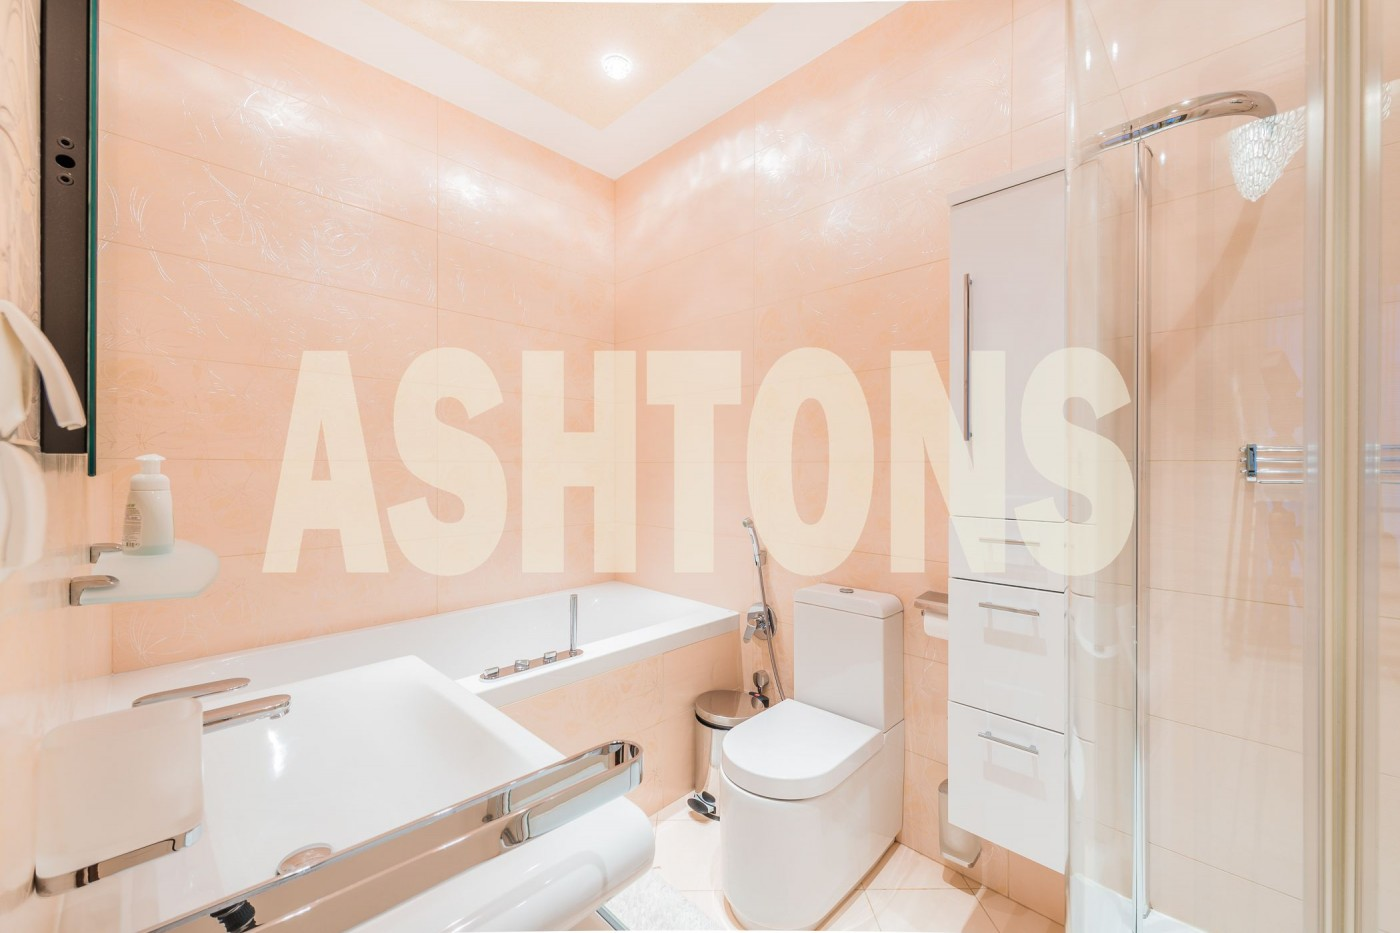 """EXCLUSIVE OFFER IN ELITE RESIDENTIAL COMPLEX """"FOUR WINDS"""". APARTMENT FOR RENT. REAL ESTATE AGENCY ASHTONS INTERNATIONAL REALTY ASHTONS.RU"""